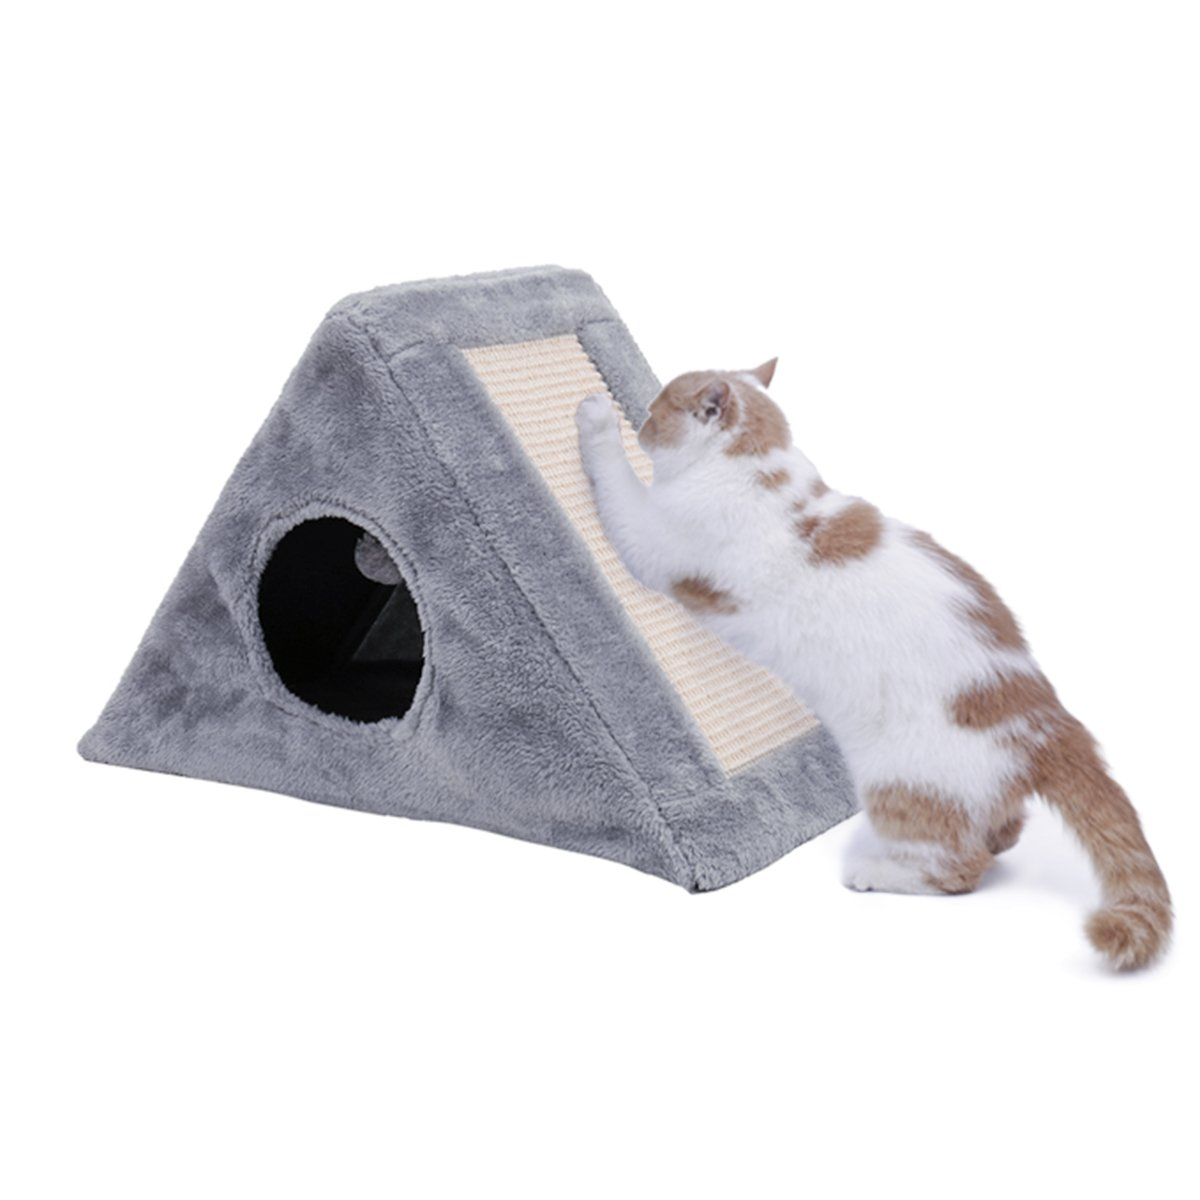 PAWZ Road 2-in-1 Cat Bed Kitty Scratch Post Foldable and Durable